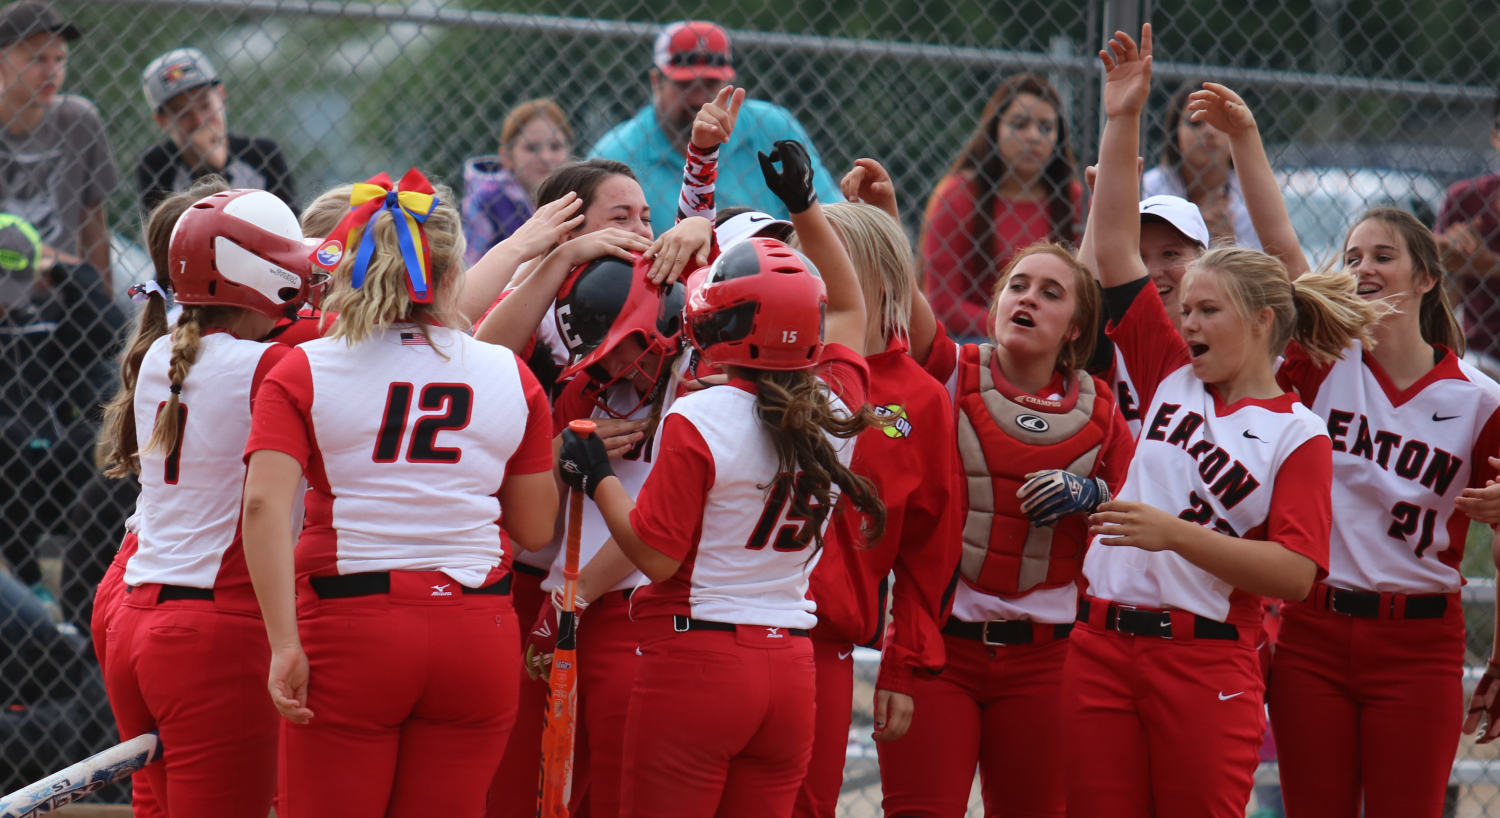 Reds Softball hits it off with explosive home opener